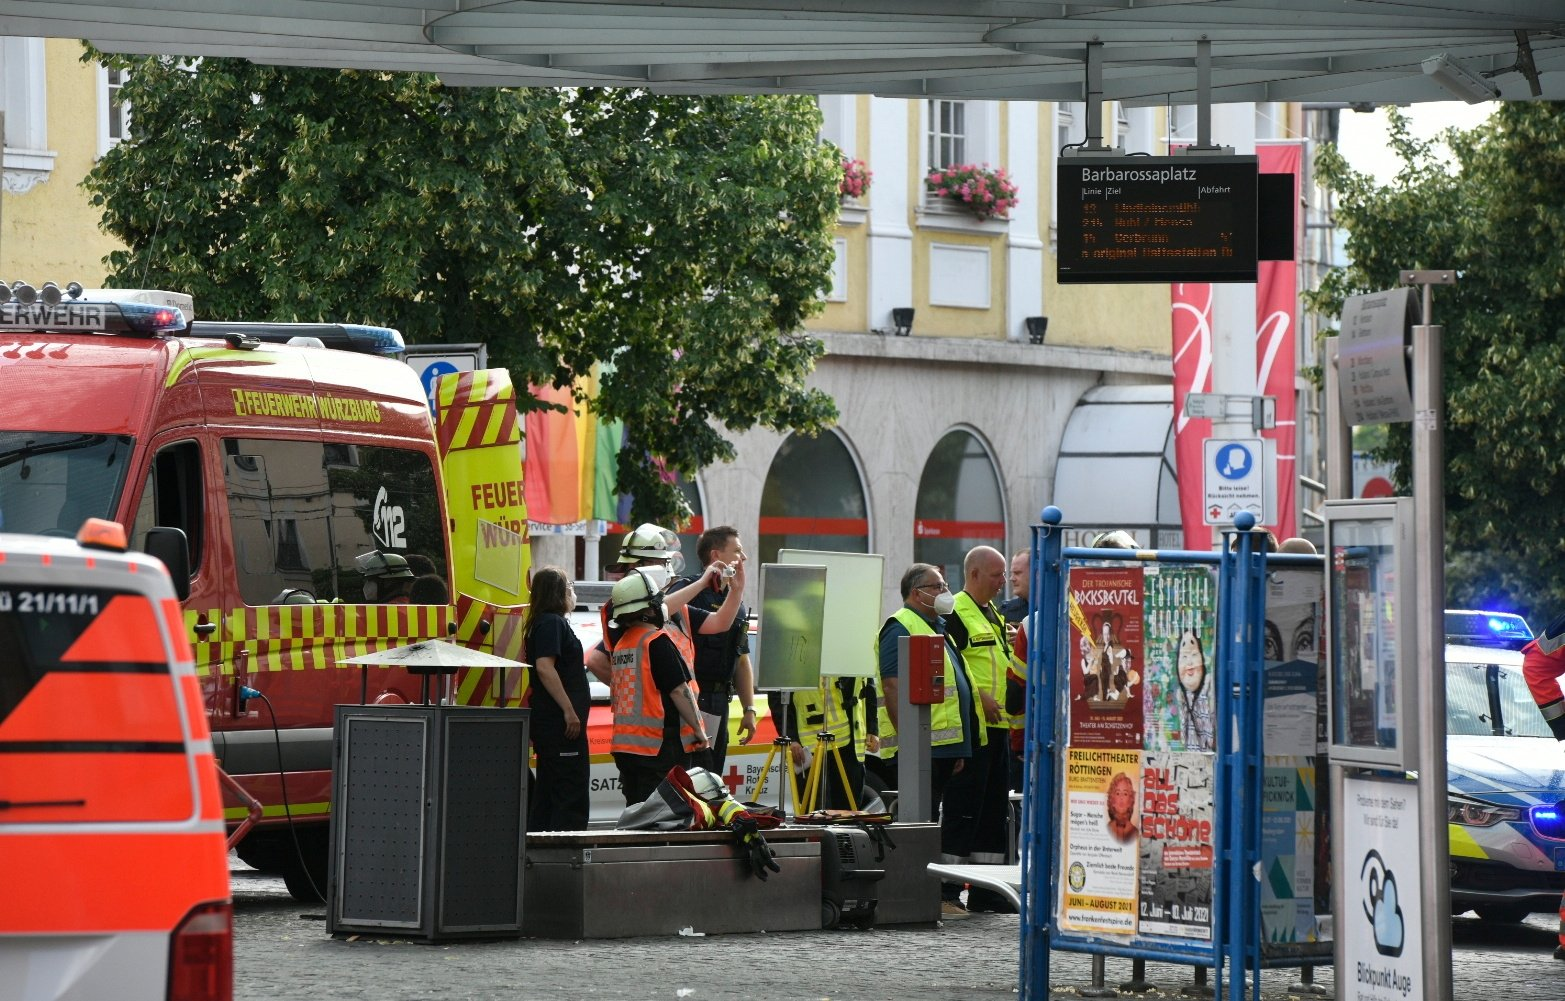 """Officials gather at Barbarossaplatz in the German town of Wuerzburg, Germany, June 25, 2021, during a """"major operation"""" in which police arrested a suspect after local media had earlier reported multiple stabbings. (Reuters Photo)"""